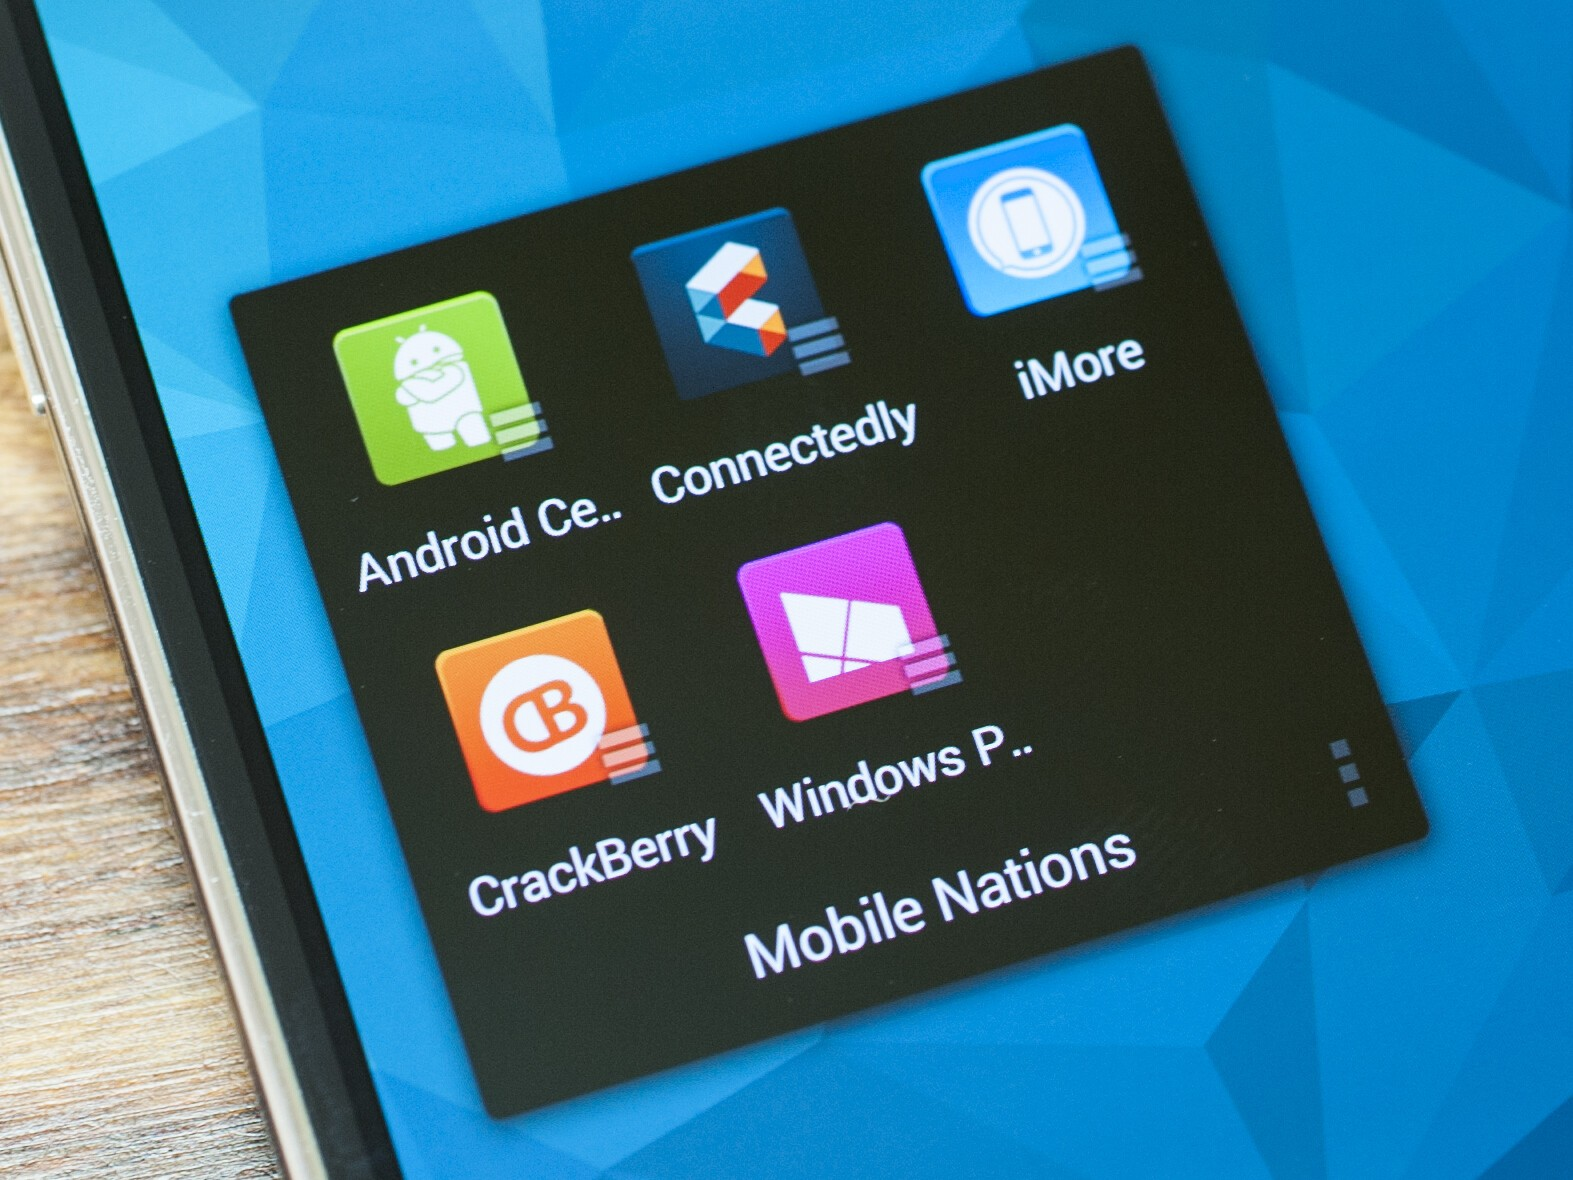 Mobile Nations Apps